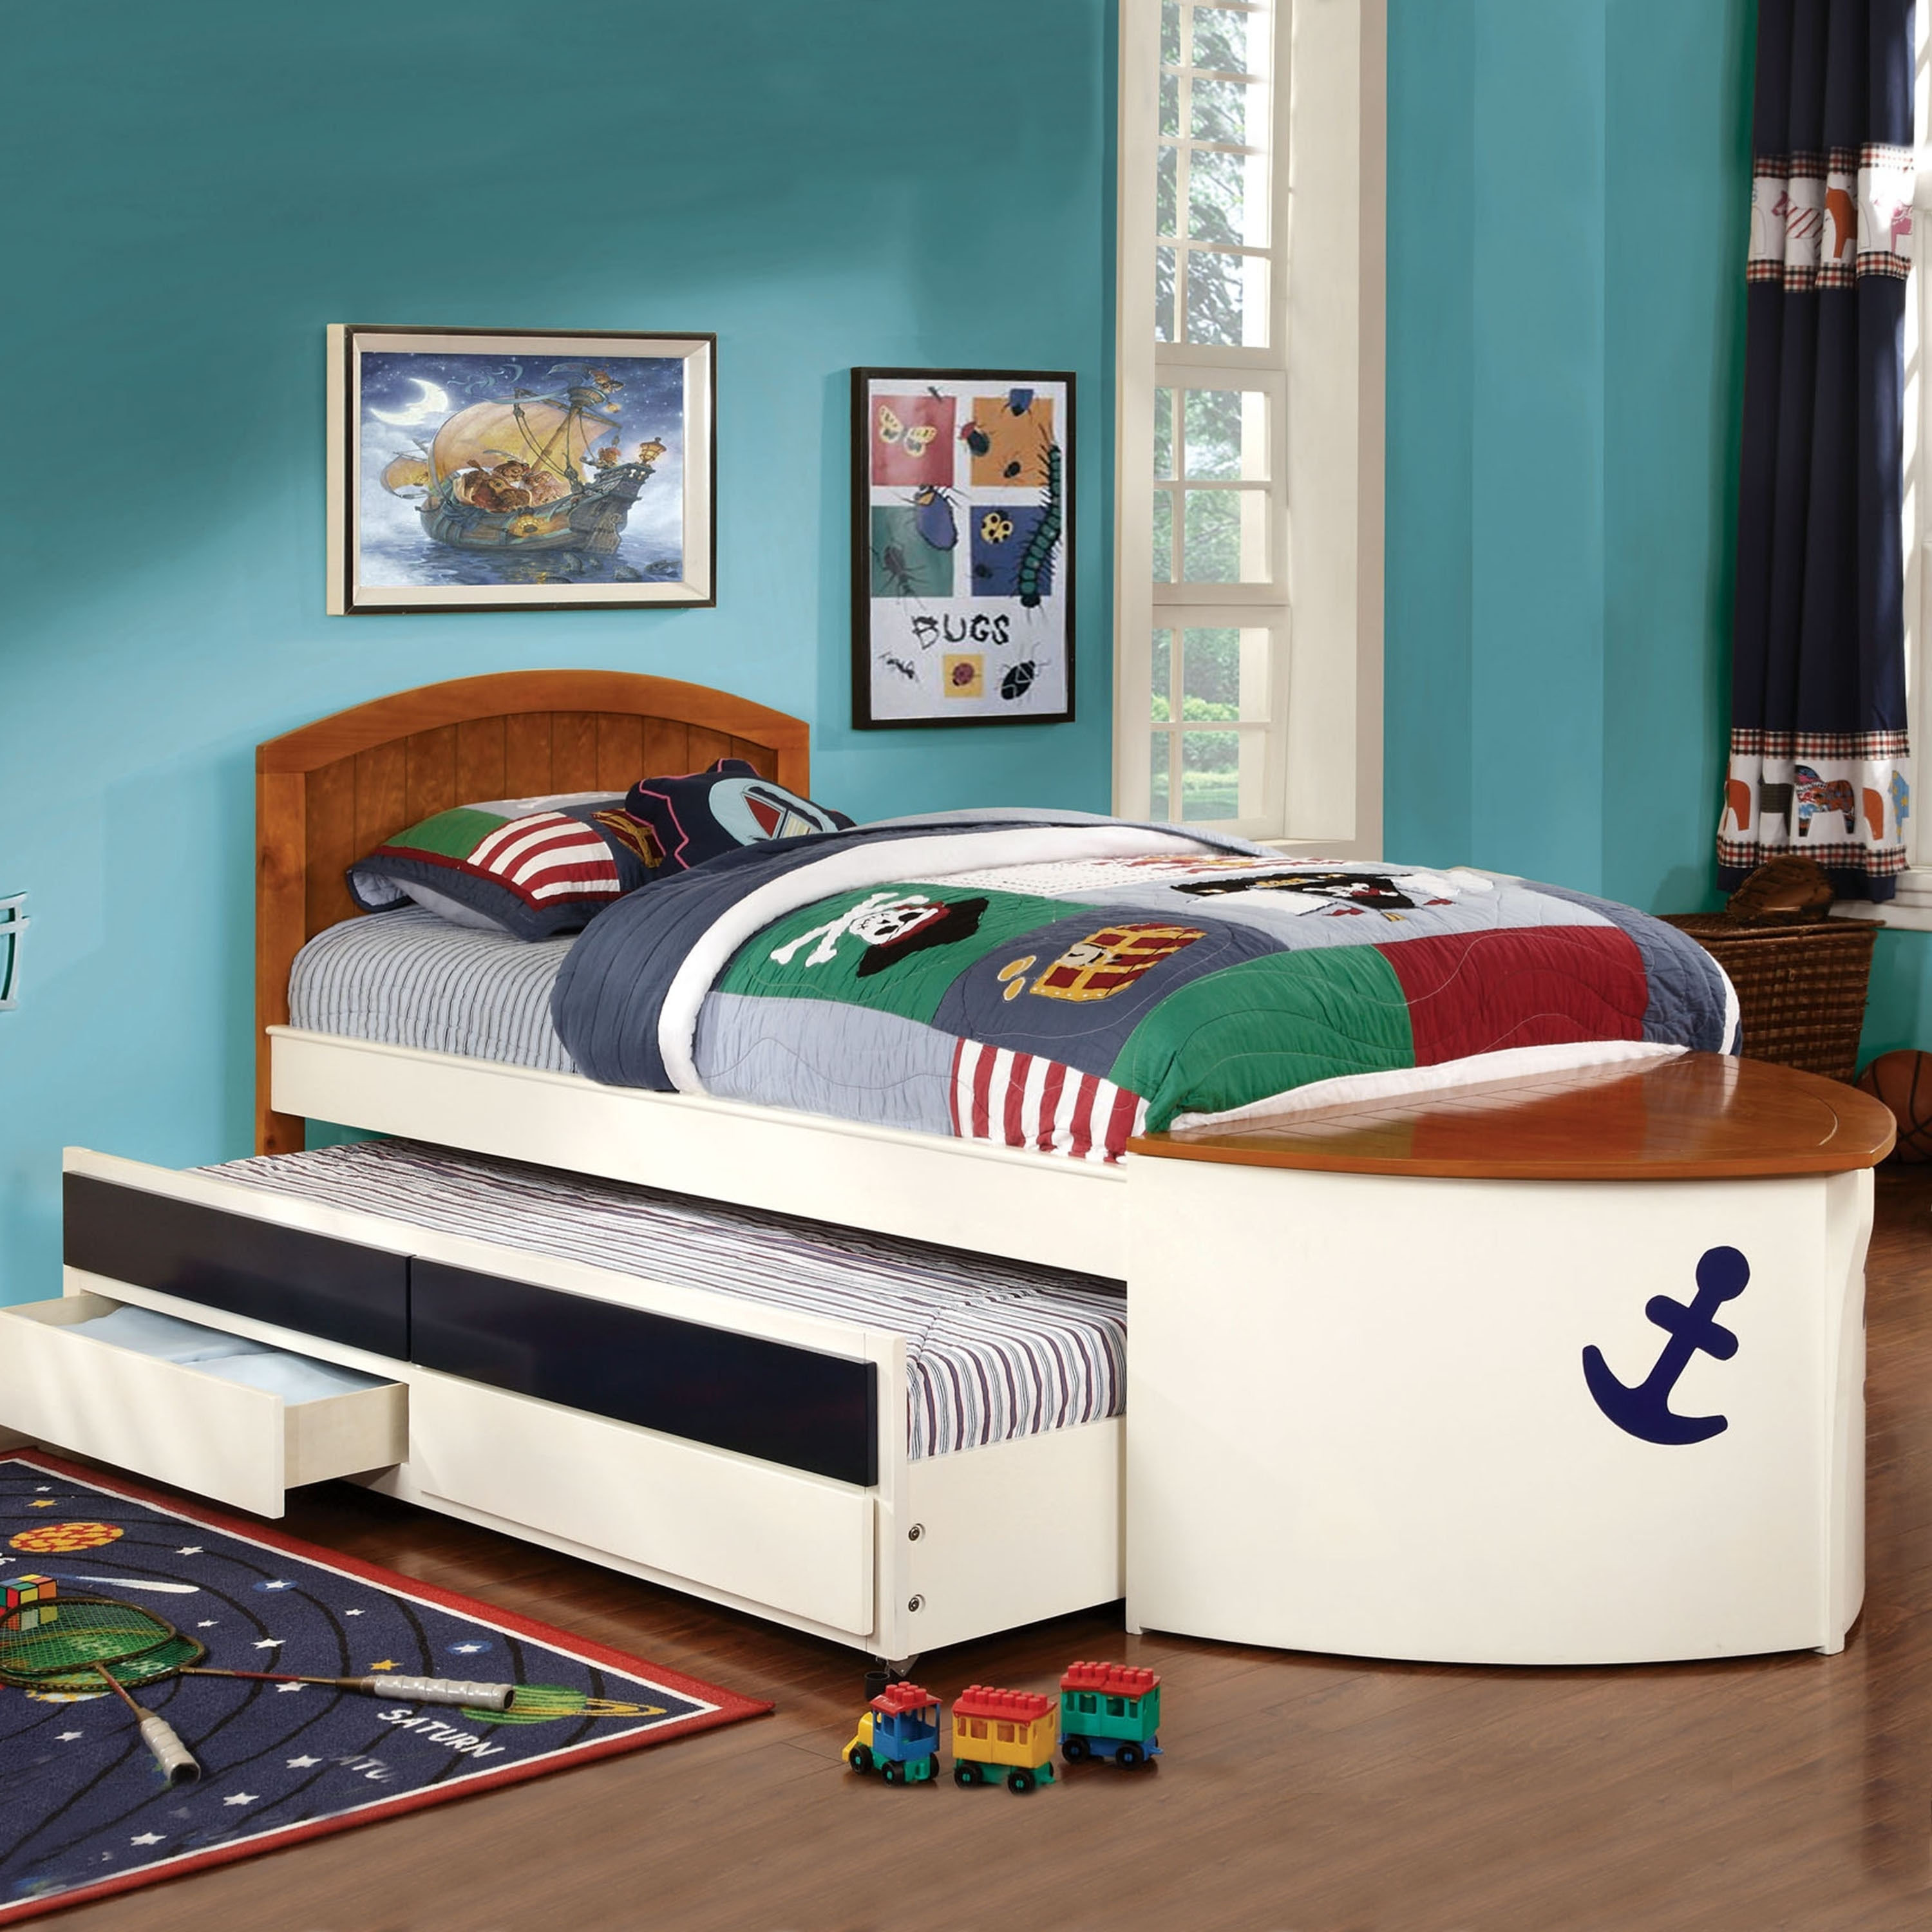 Furniture of America Capitaine Boat Twin Bed with Trundle...